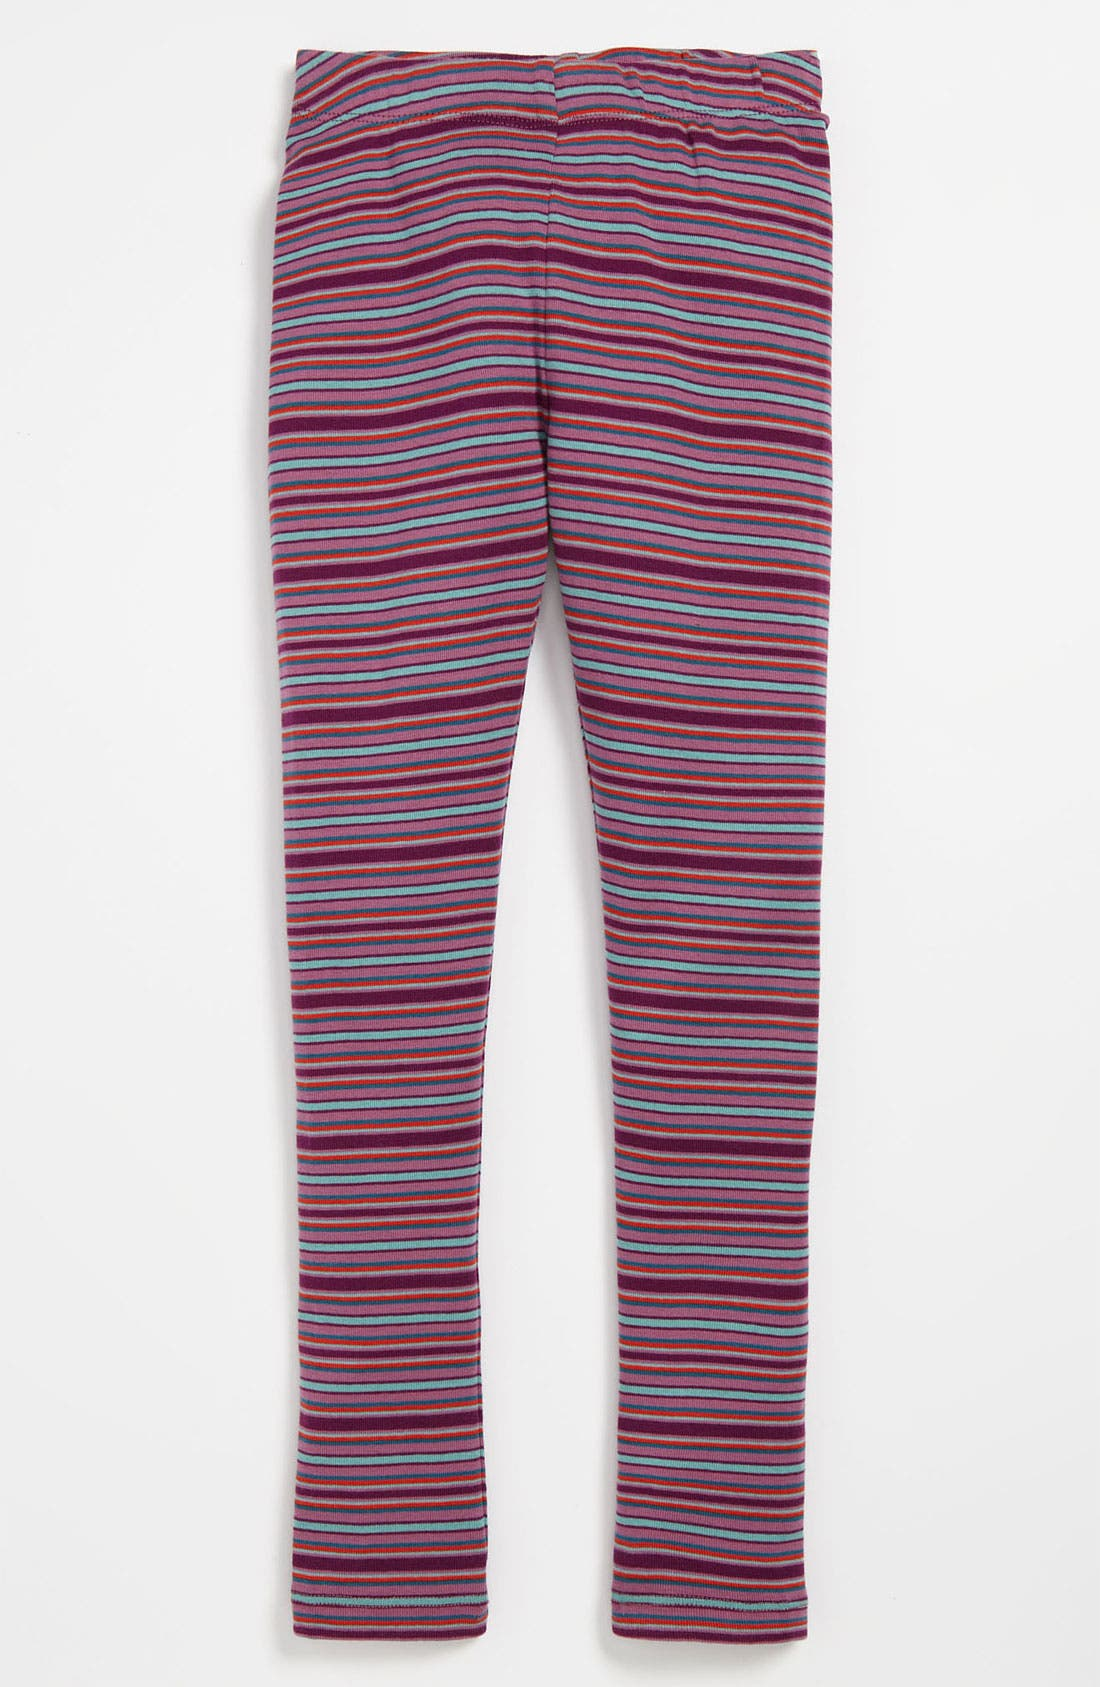 Main Image - Tea Collection 'Enchanted' Stripe Leggings (Little Girls & Big Girls)